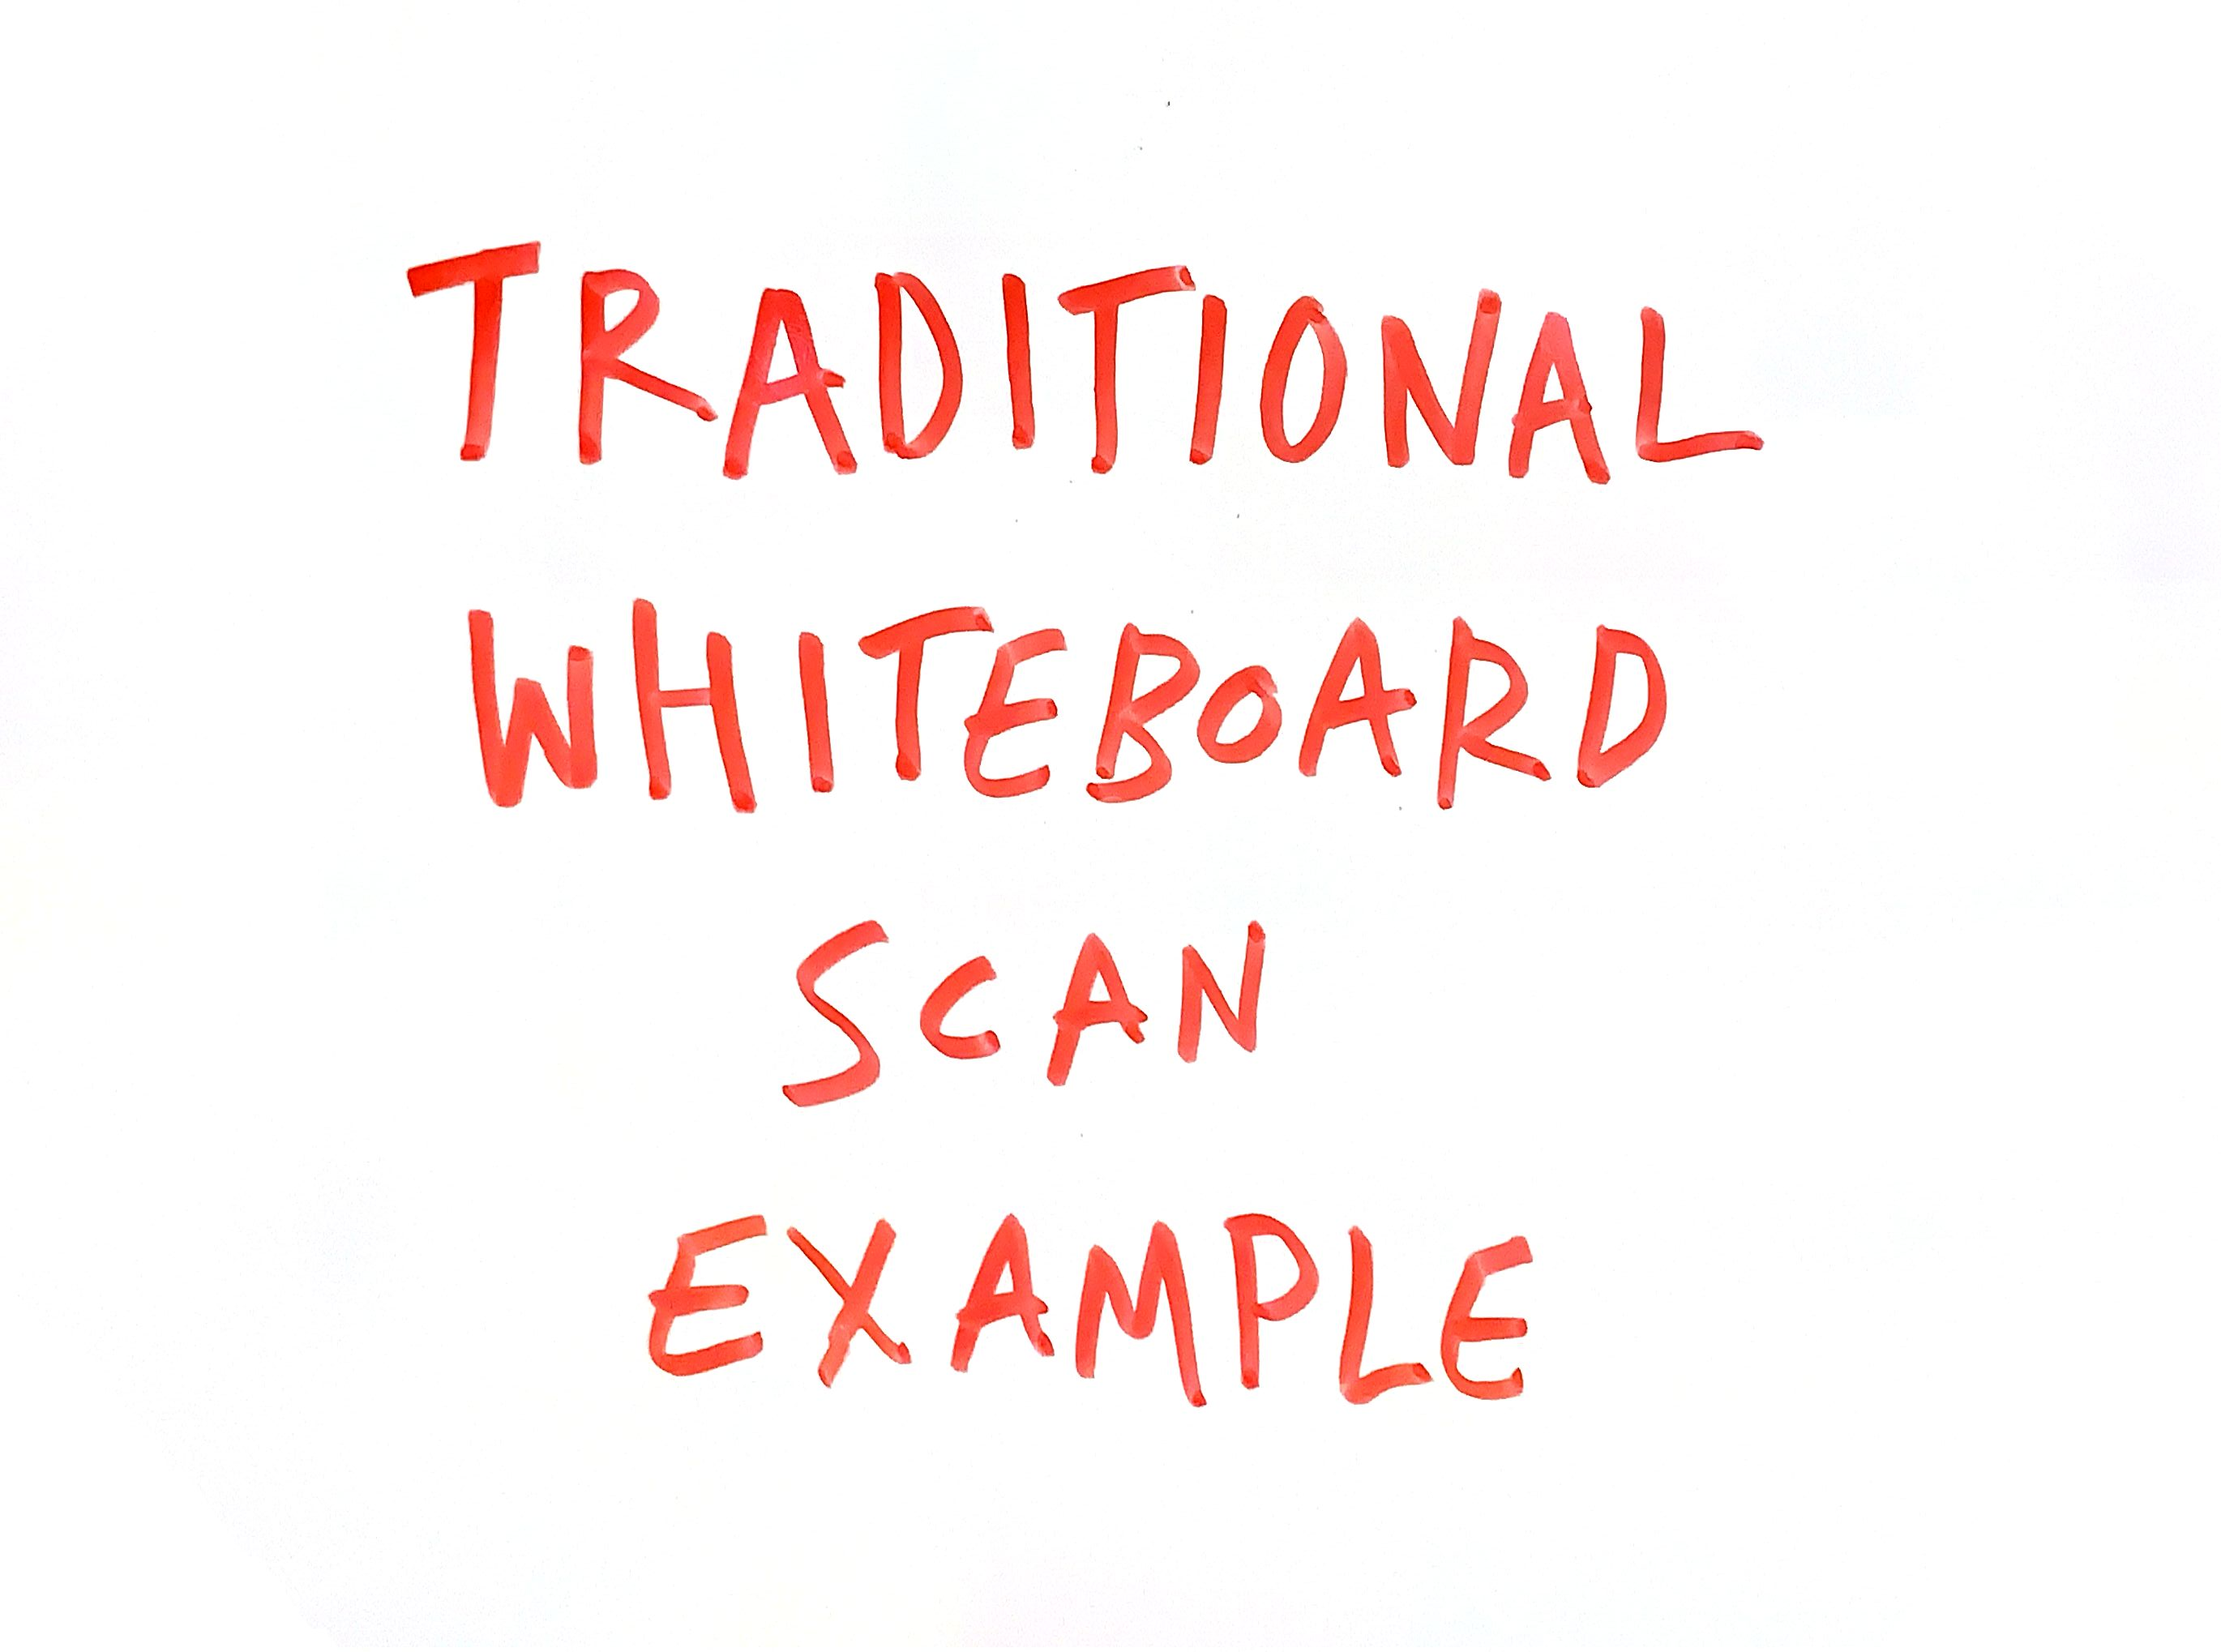 Traditional_Whiteboard_Scan_Example.jpg